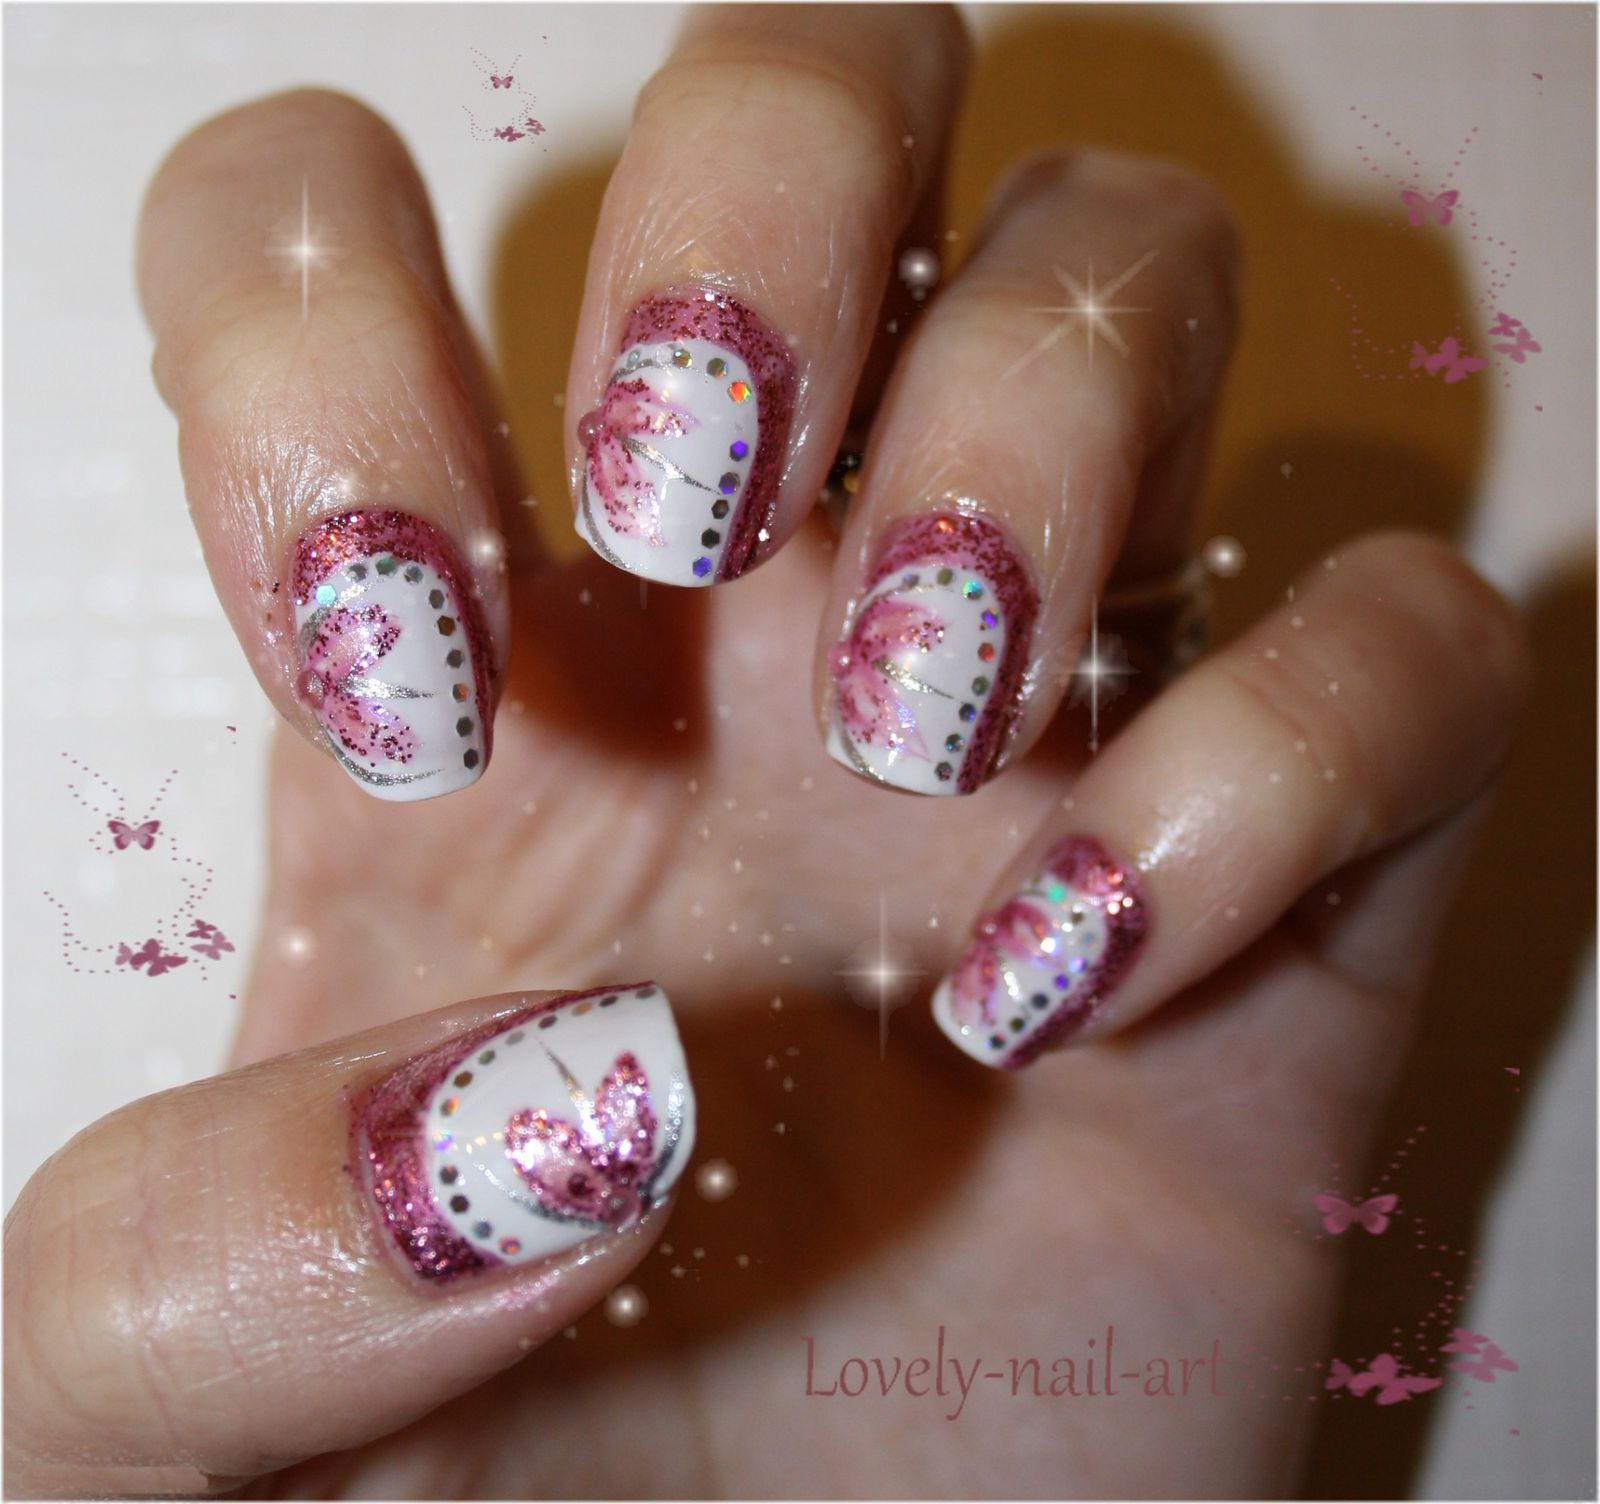 Nail-art-lovely-3.jpg